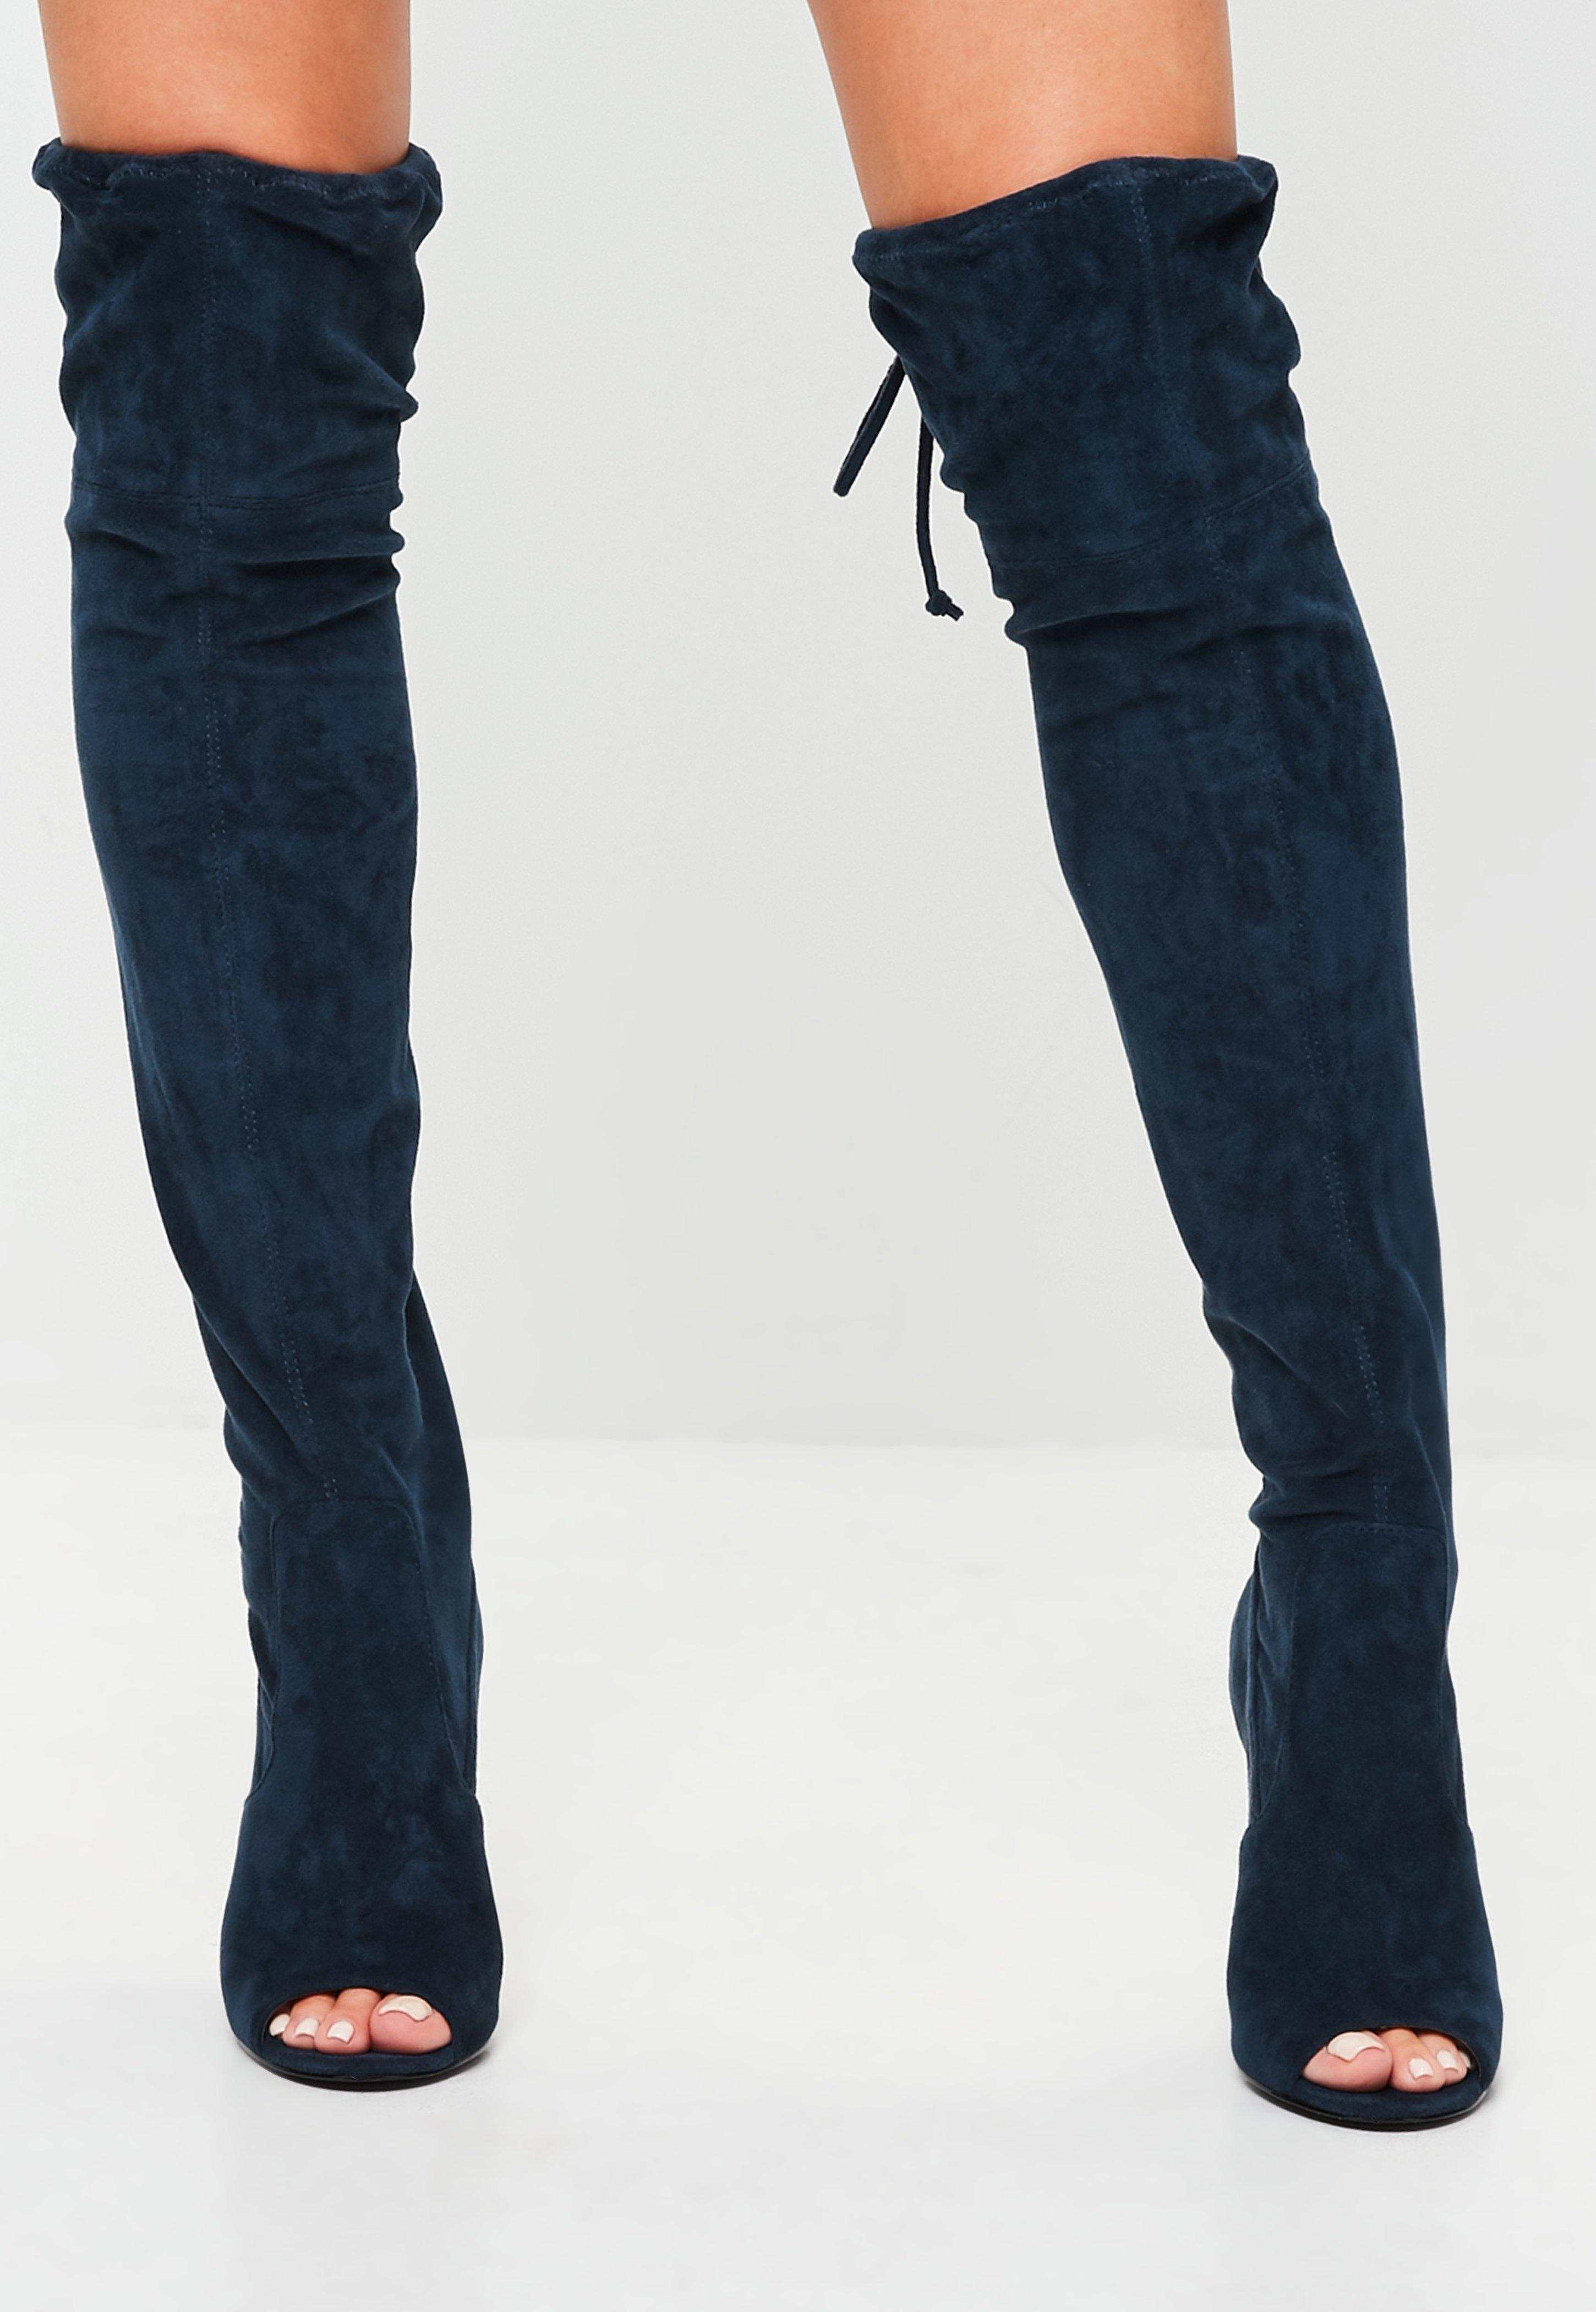 4b6e8ade65b9 Lyst - Missguided Navy Faux Suede Over The Knee Boots in Blue